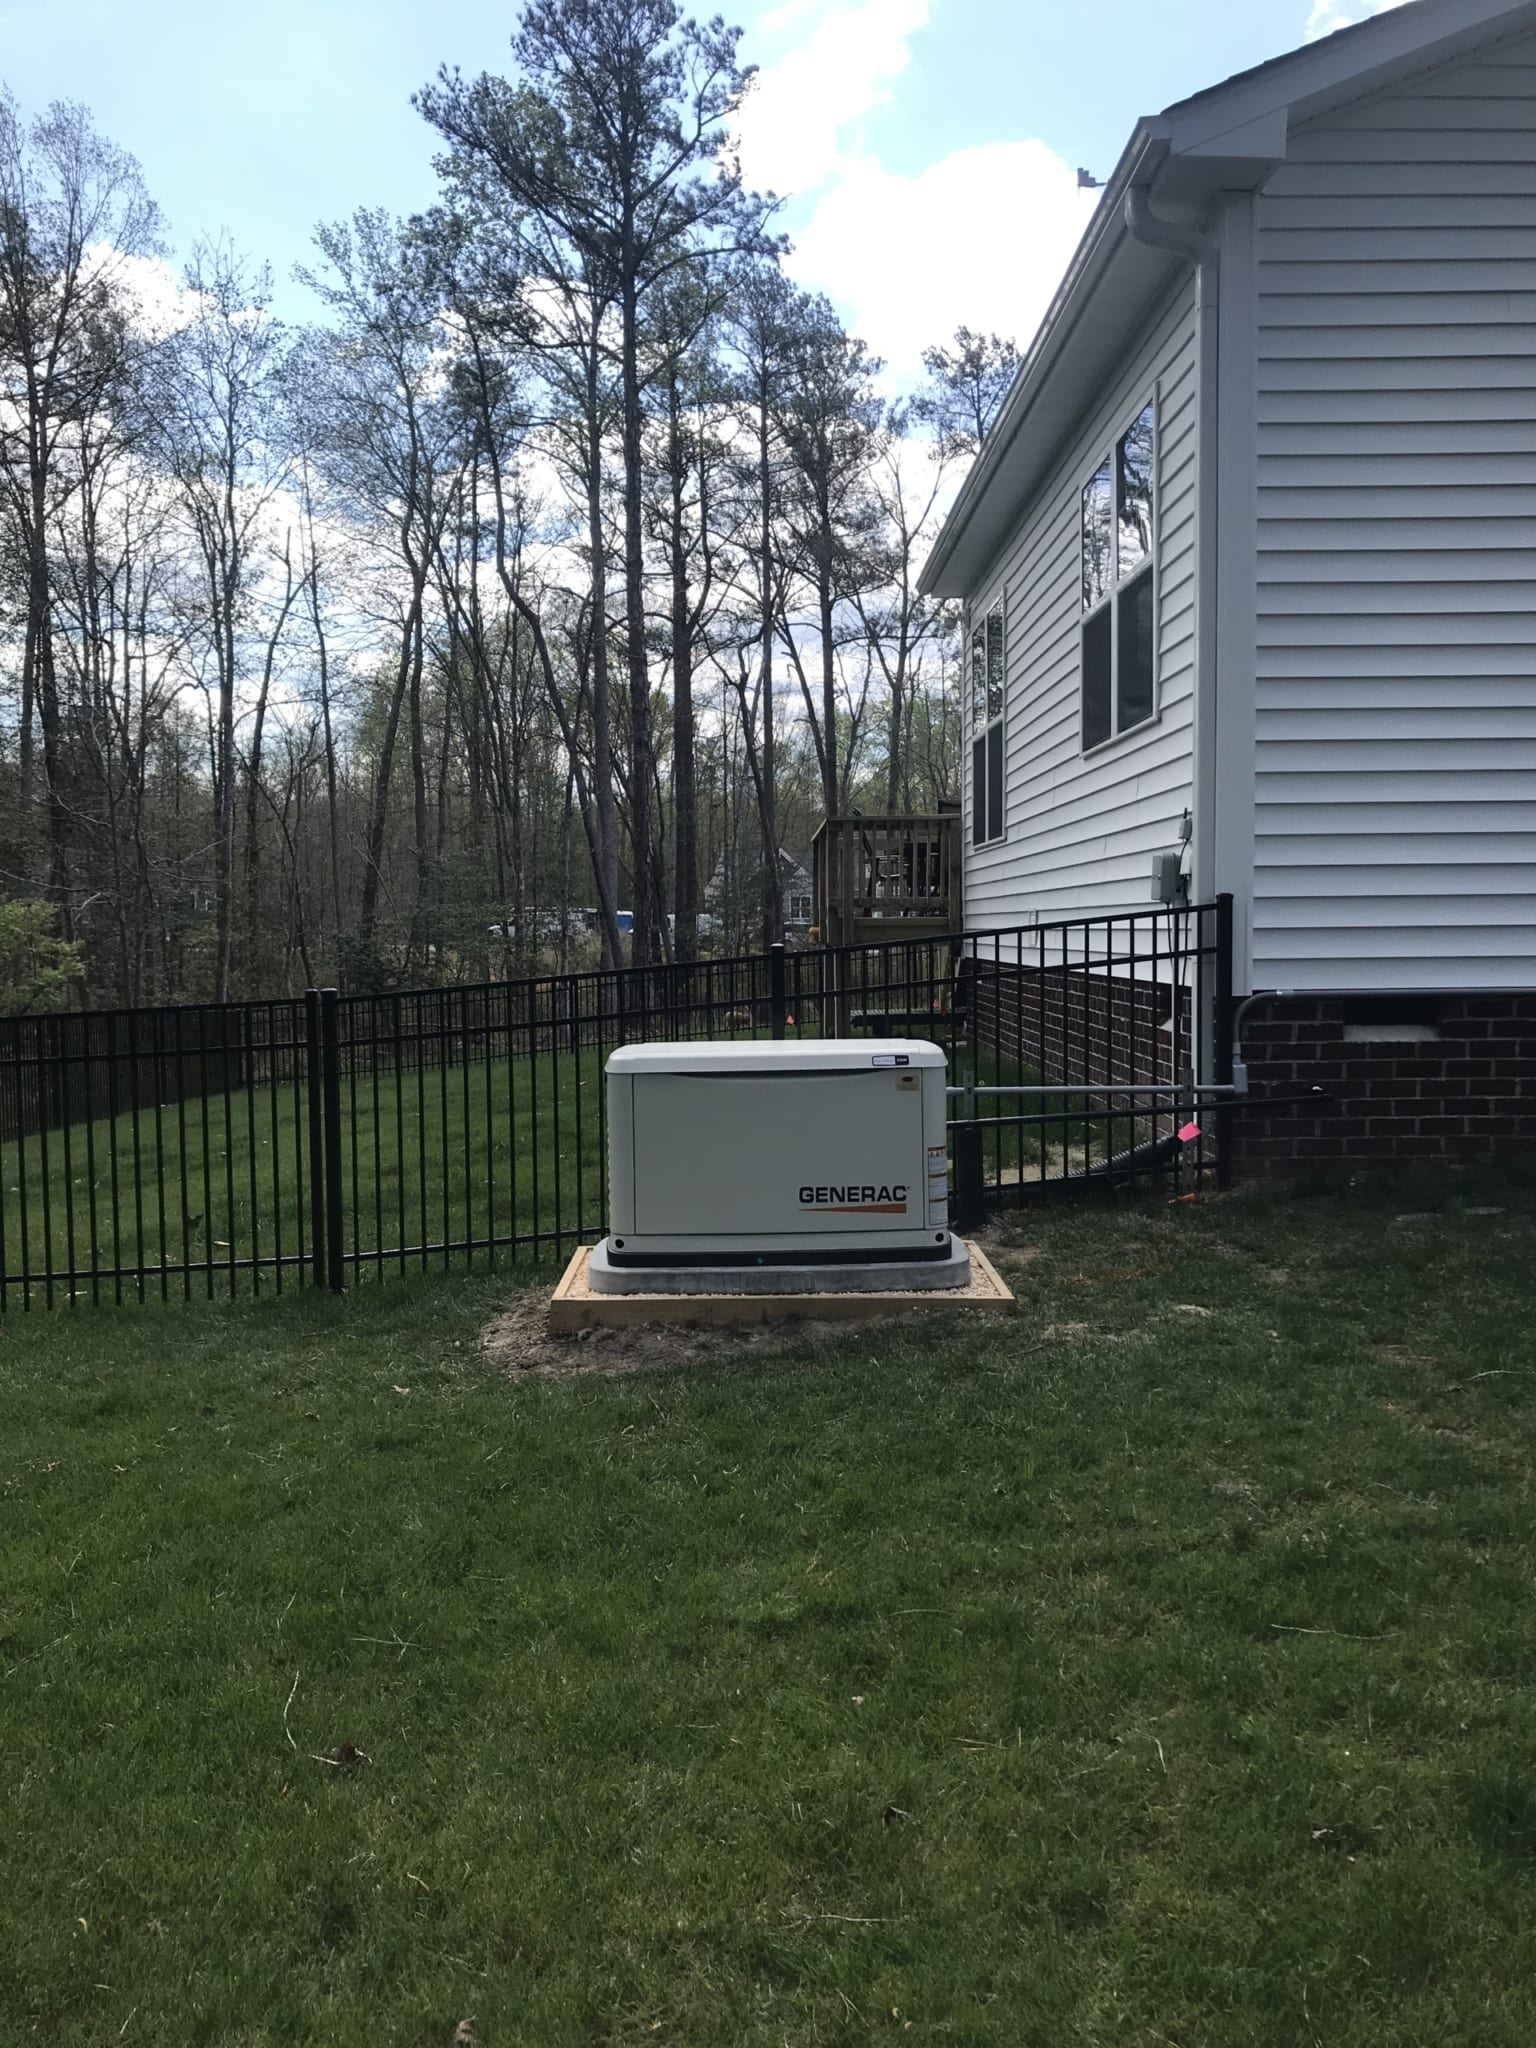 4.10.20 Chesterfield Generac Automatic Standby Generator Far